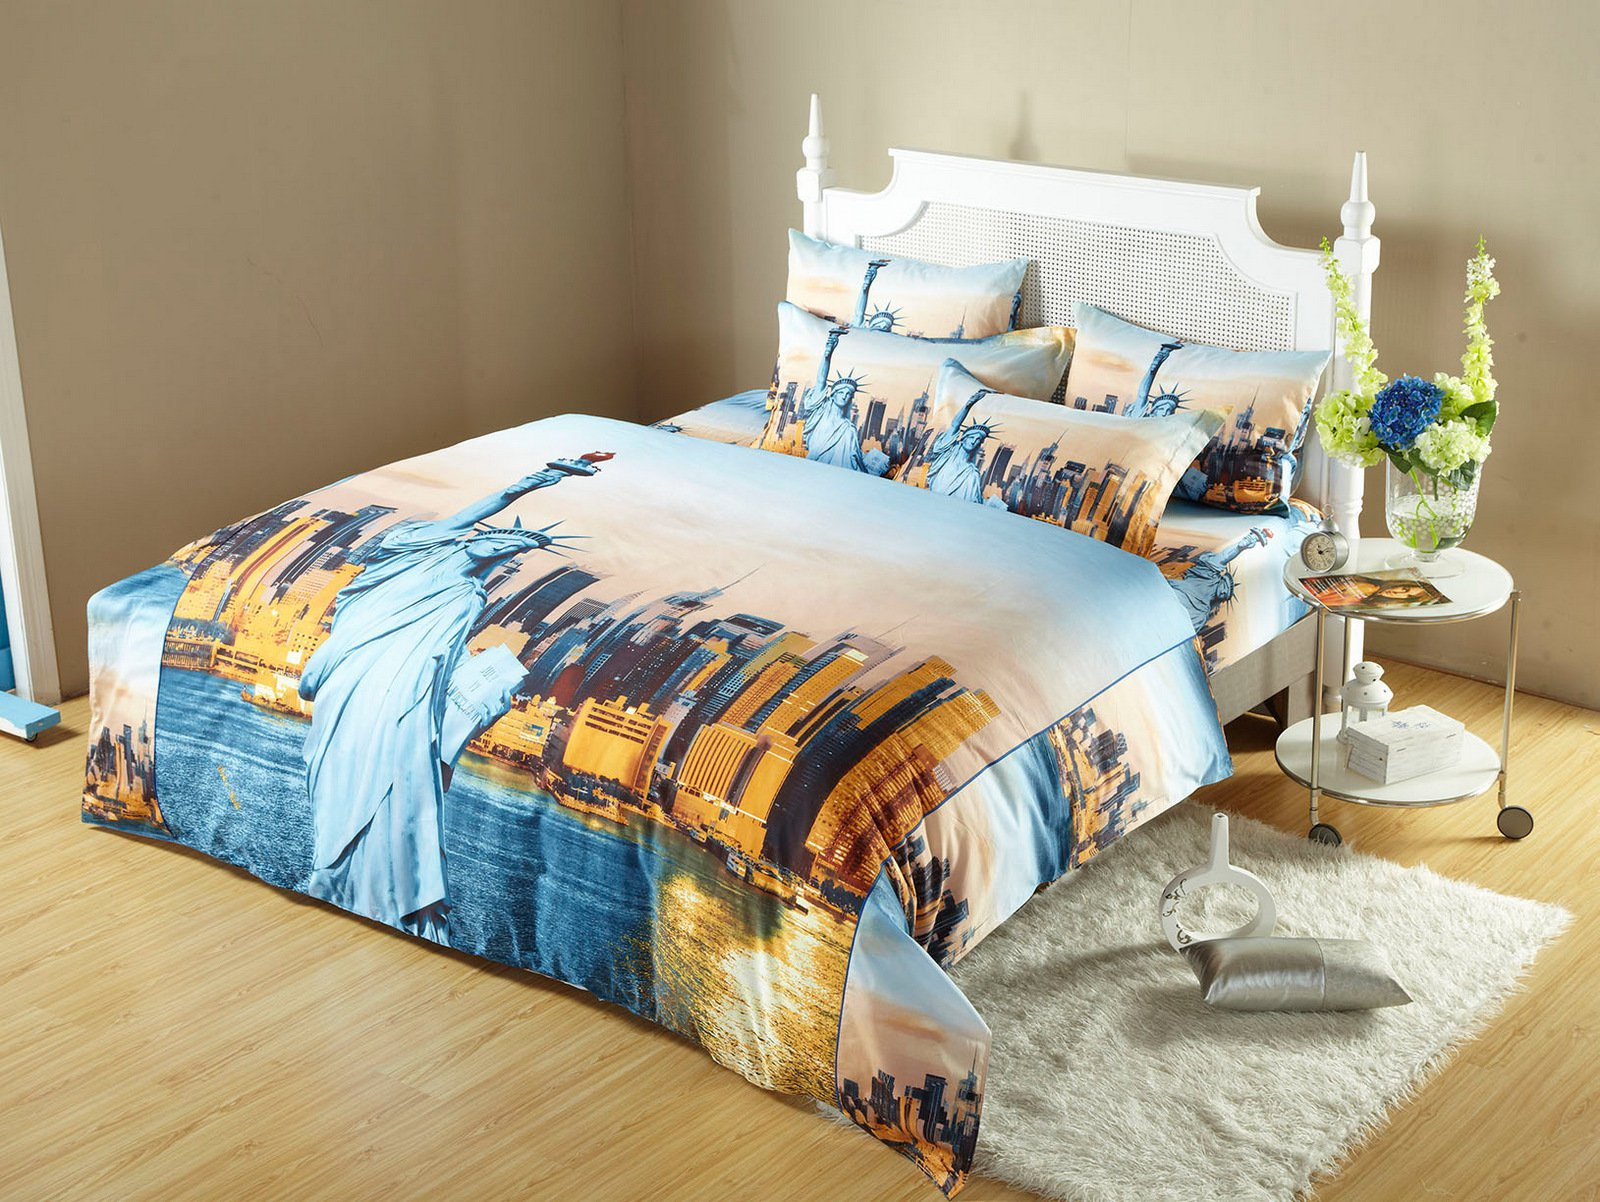 statue of liberty nyc city themed king size bedding duvet cover set